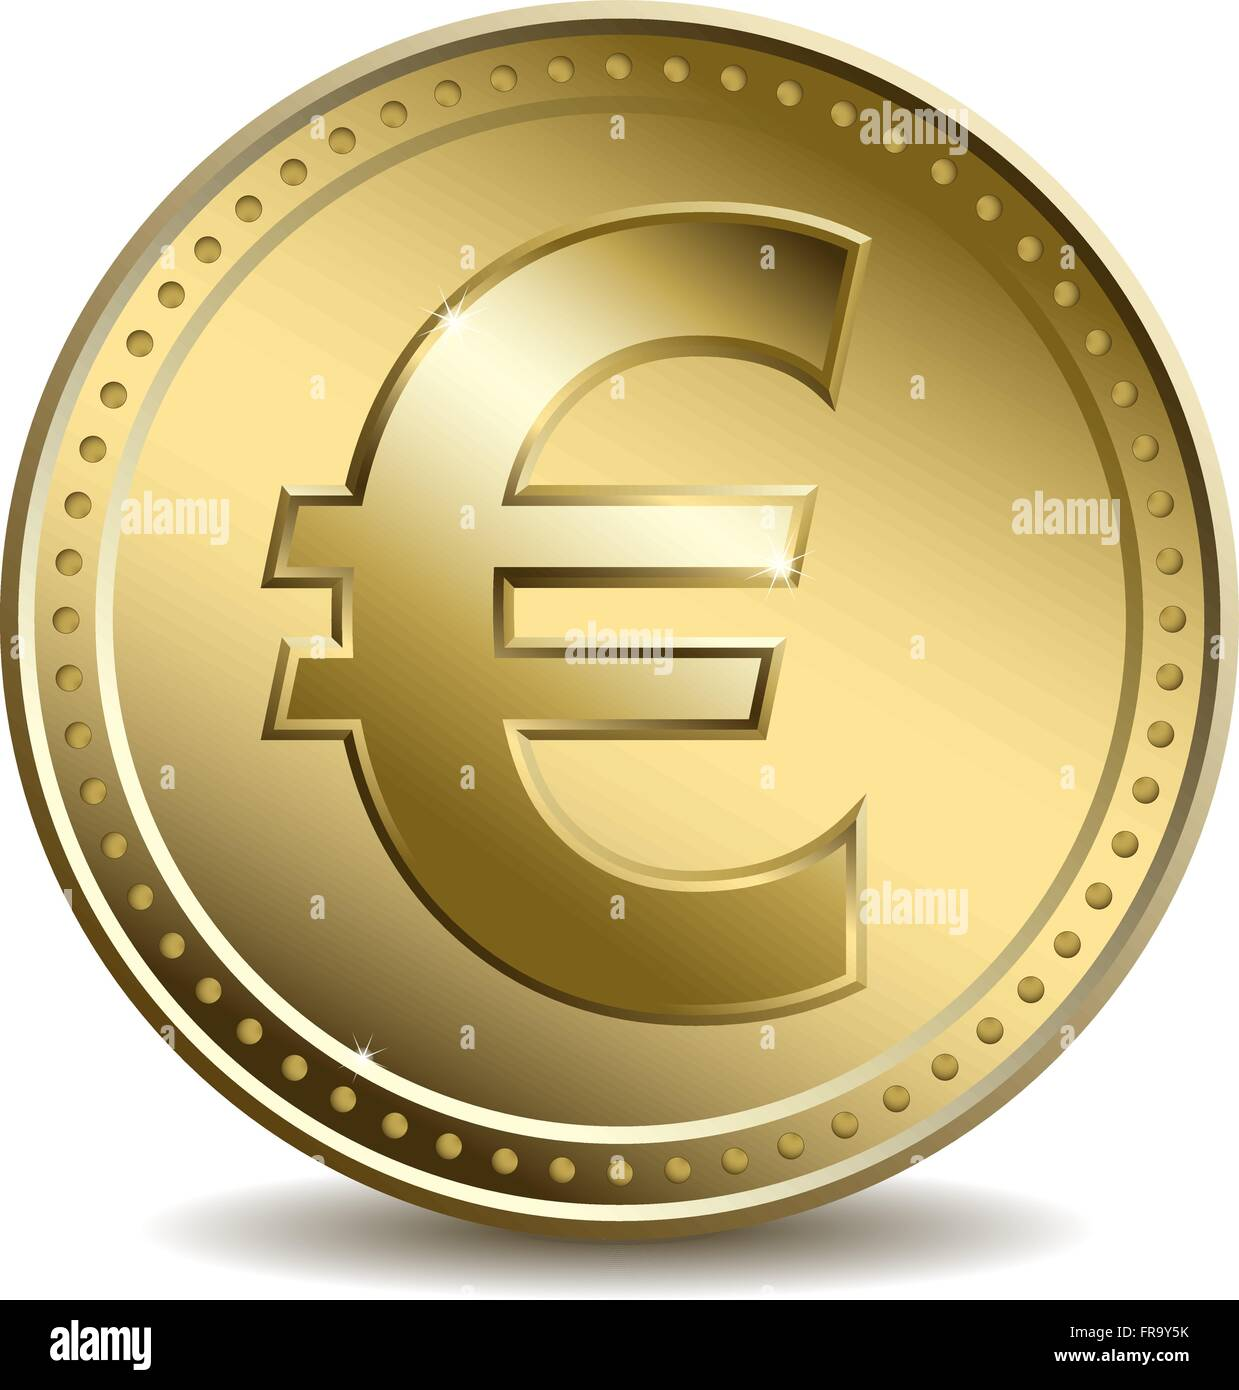 Gold Coin With The Euro Symbol Stock Vector Art Illustration